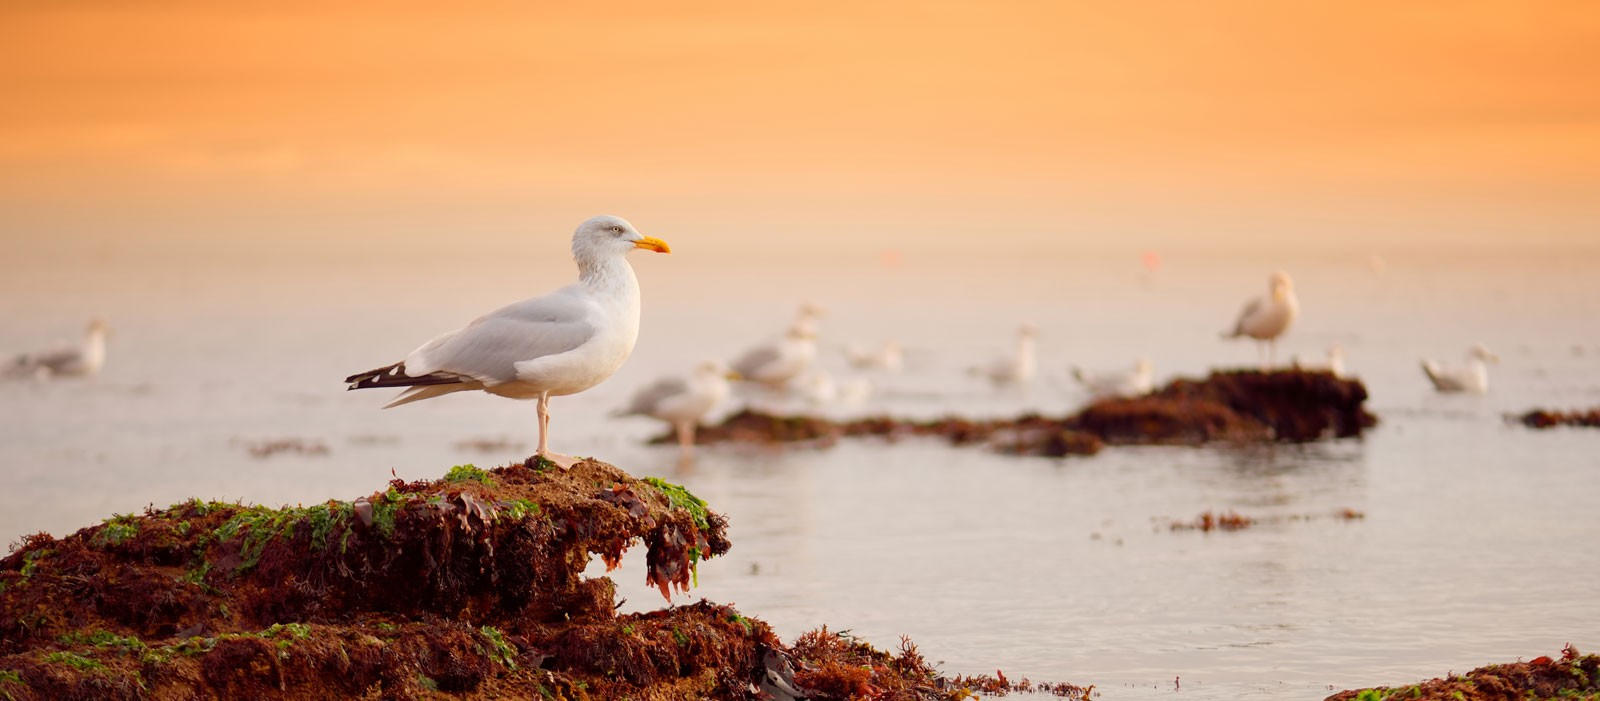 Symbolic Meaning of Seagulls on Whats-Your-Sign